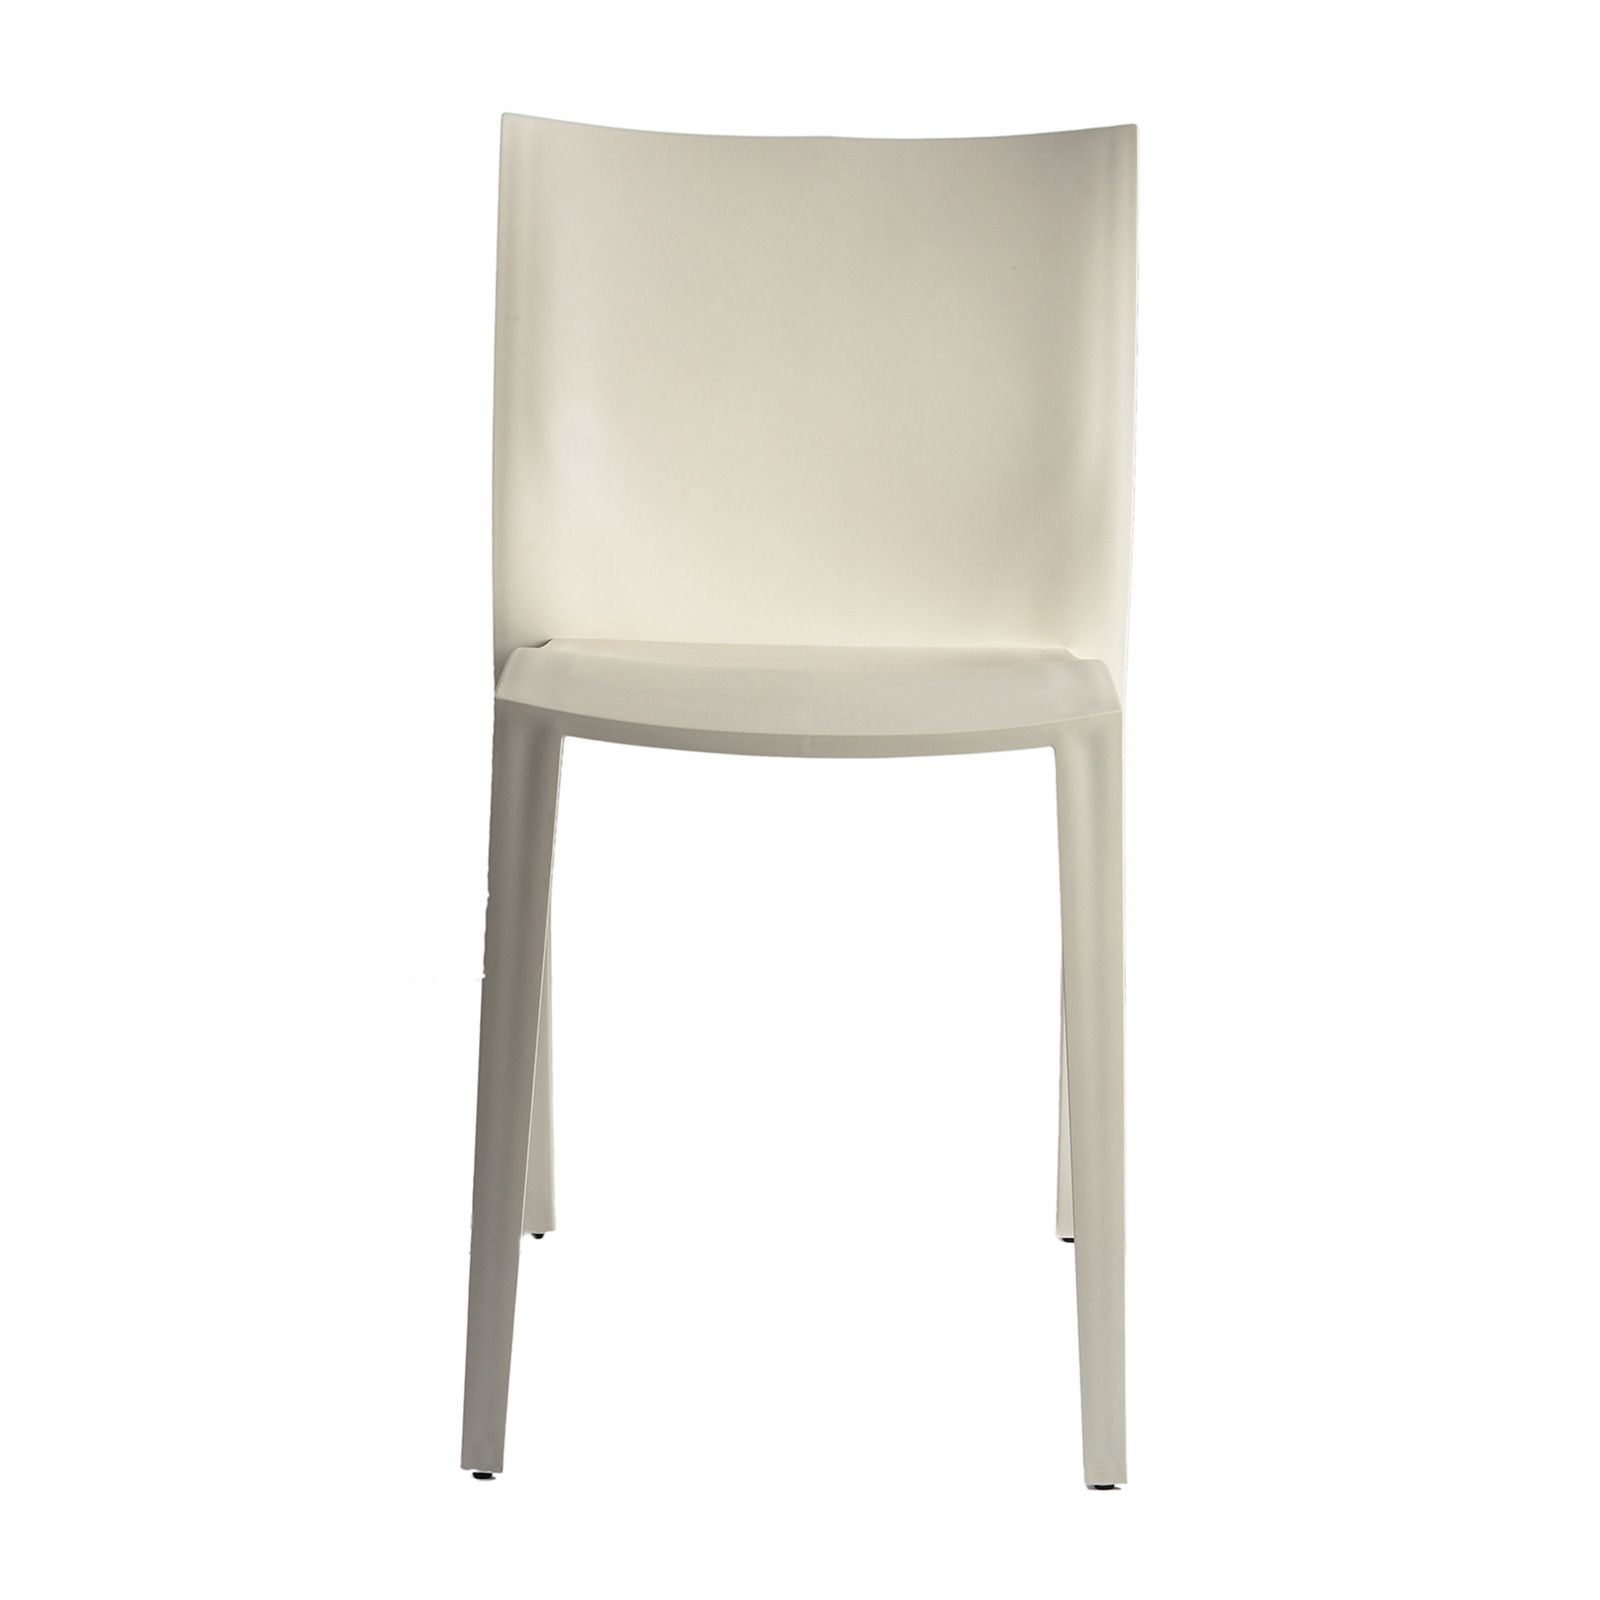 XO By Starck Slick Slick Lot De 2 Chaises Design